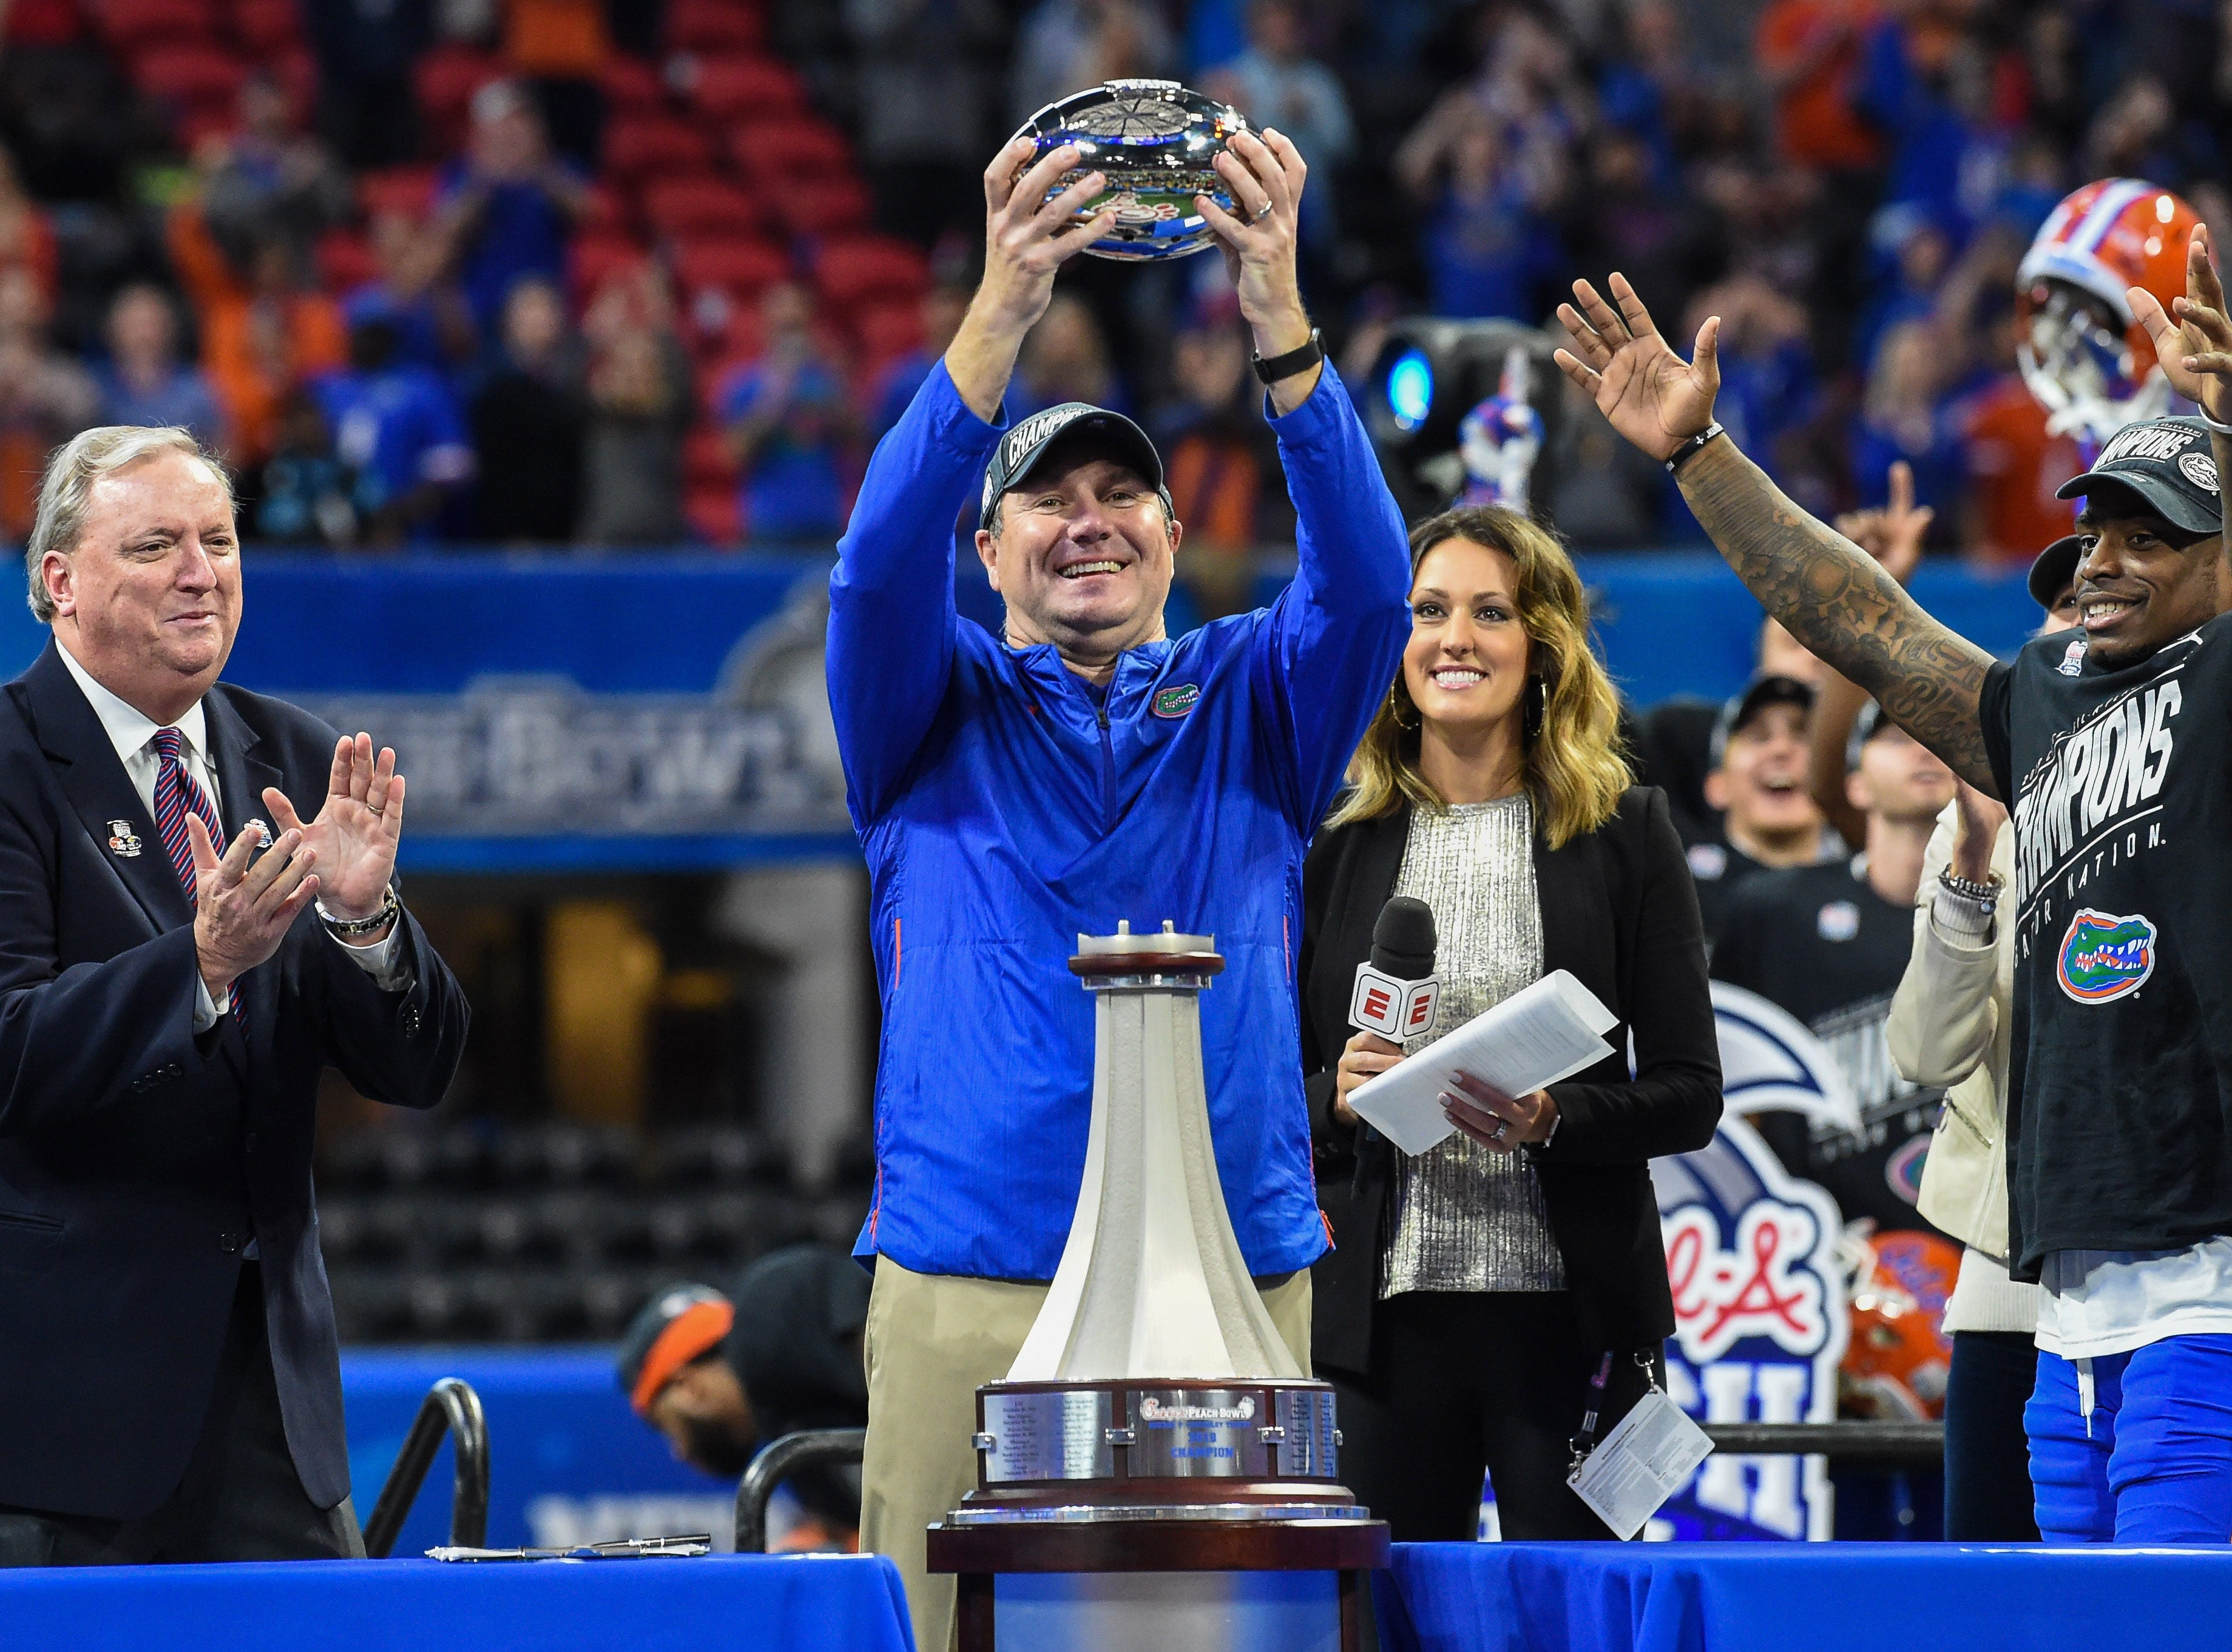 Florida Gators head coach Dan Mullen accepts the trophy after his team defeated the Michigan Wolverines in the Peach Bowl.